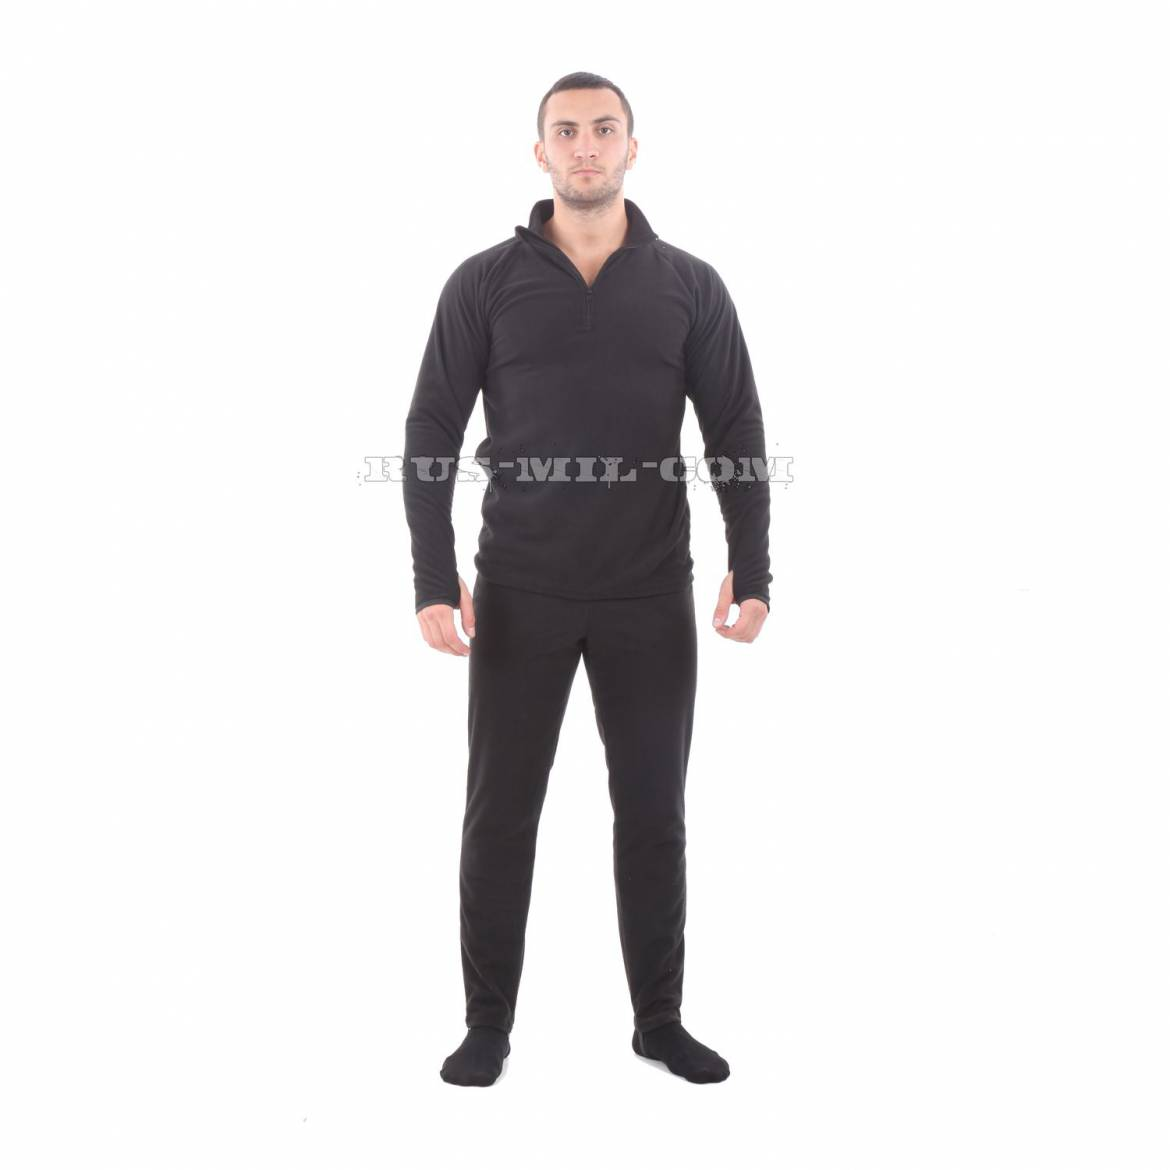 russian-Second-Layer-Thermal-Underwear-Black-for-sale.jpg